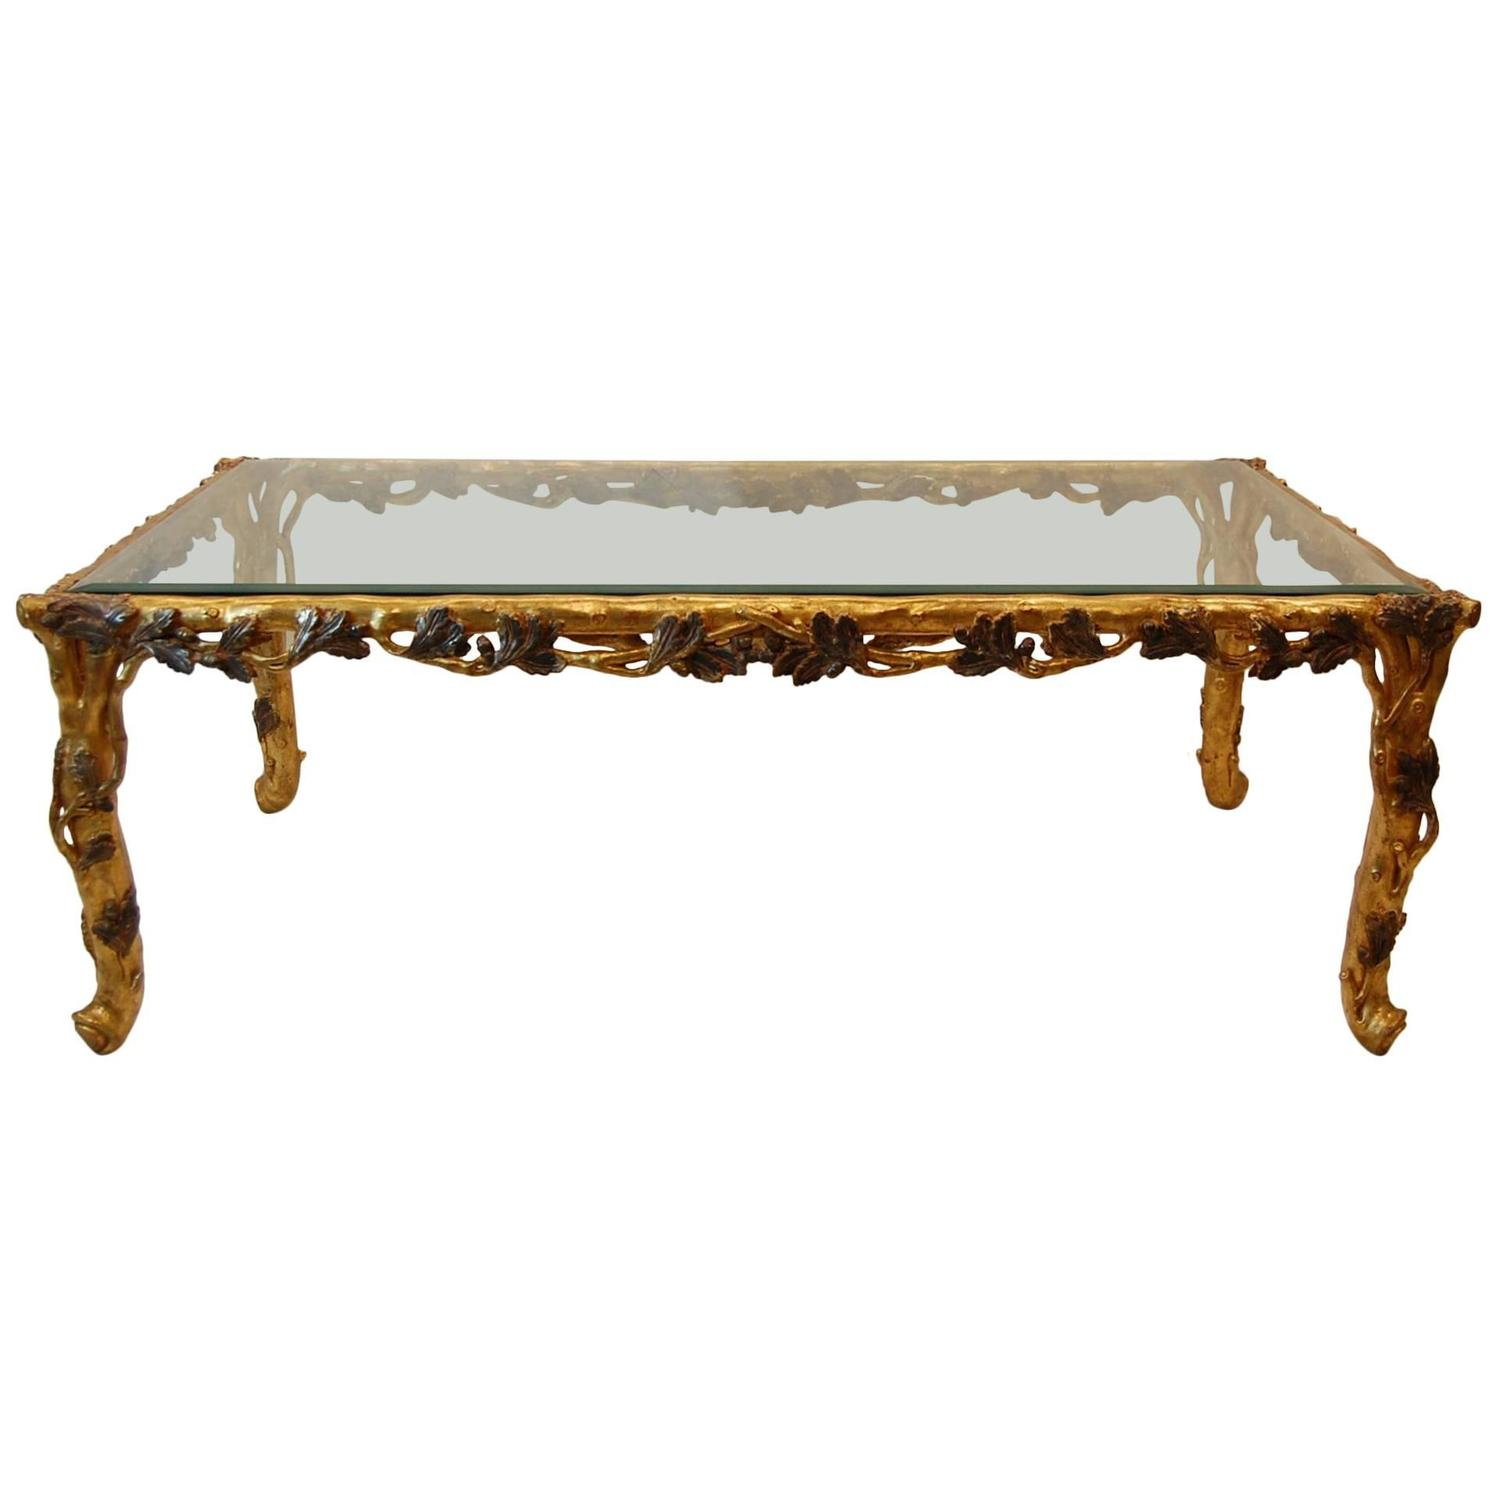 Italian Gold Leaf Carved Wood Coffee Table With Beveled Glass Top For Sale At 1stdibs